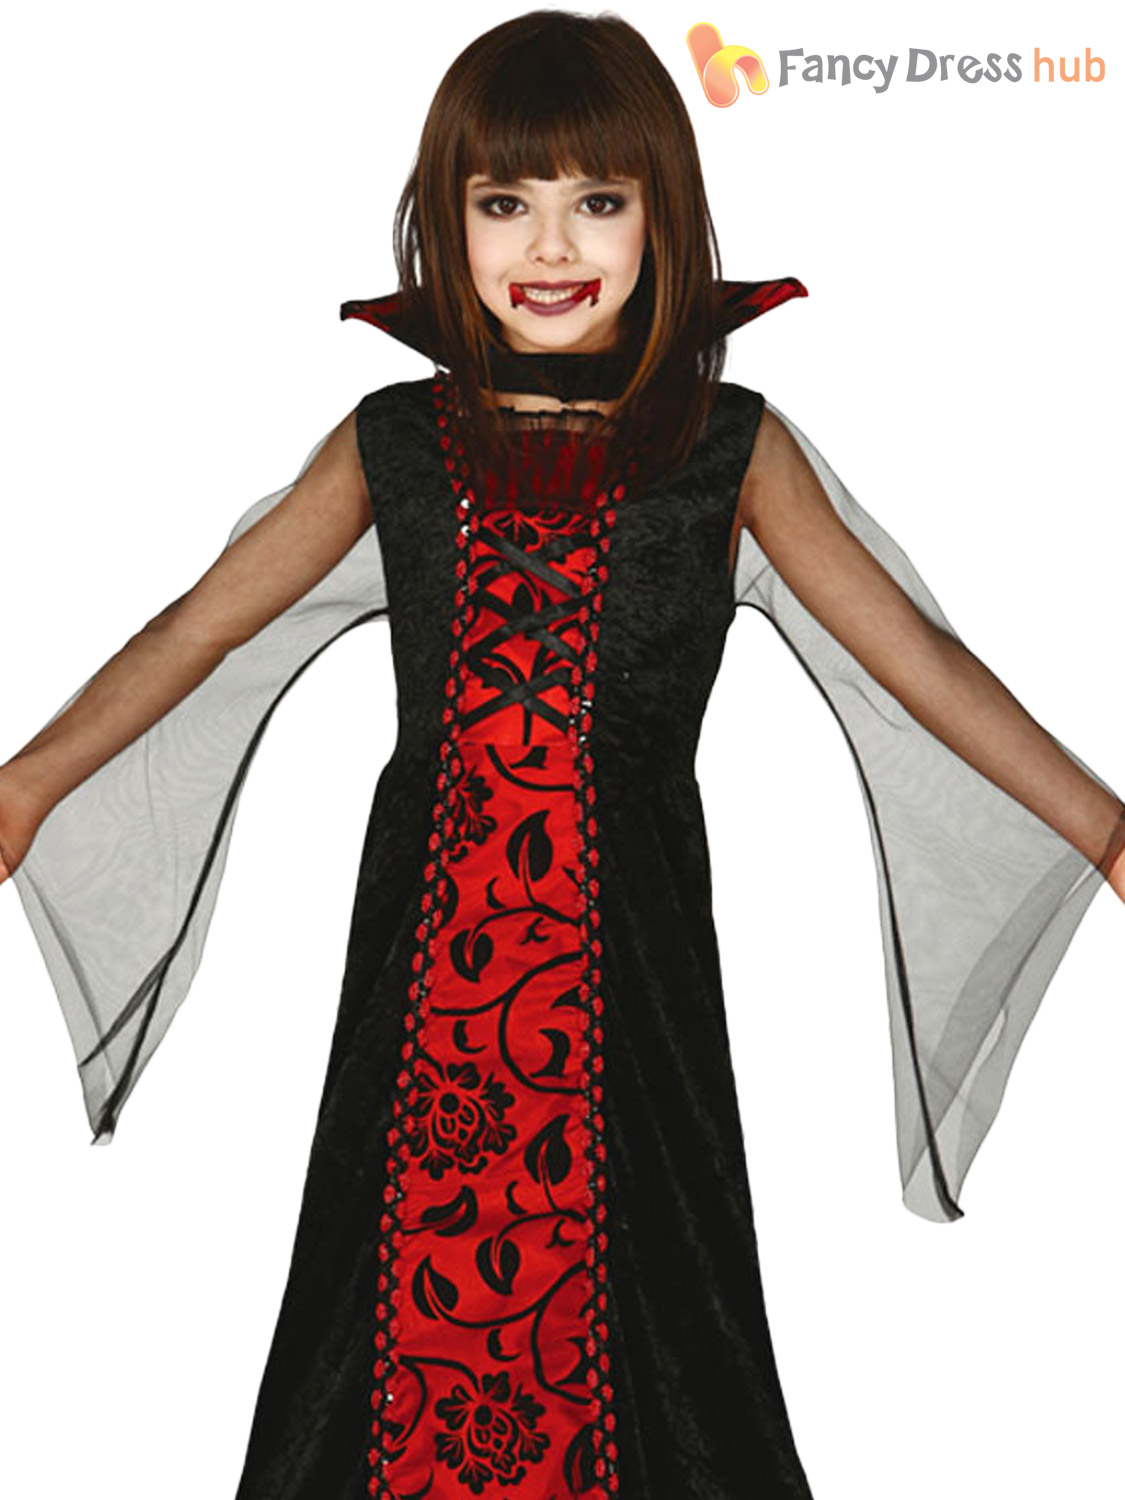 Childs-Countess-V&ire-Costume-Girls-Halloween-Dracula-Fancy-  sc 1 st  eBay & Childs Countess Vampire Costume Girls Halloween Dracula Fancy Dress ...